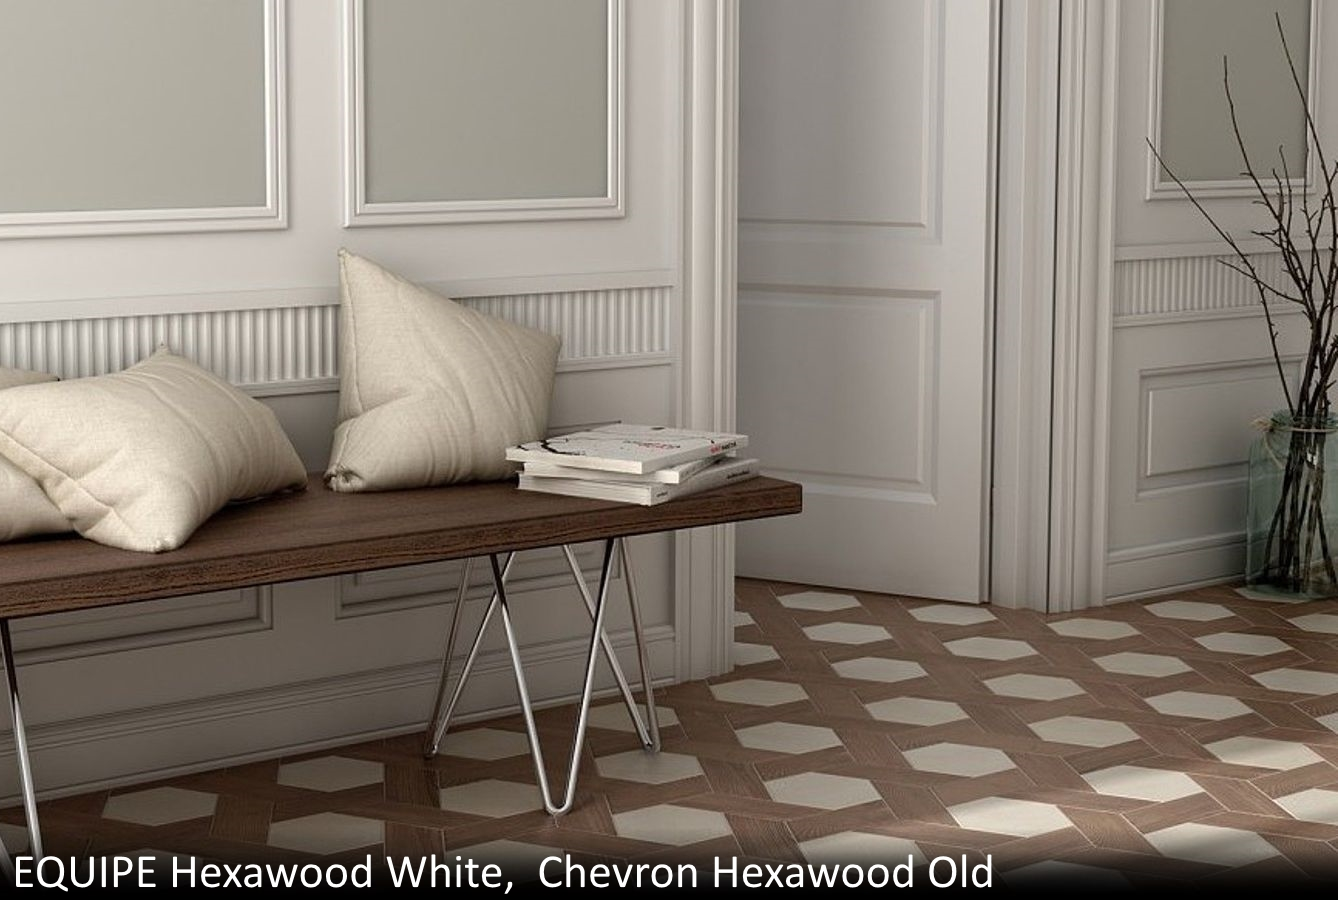 Equipe Hexawood White  Chevron Hexawood Old